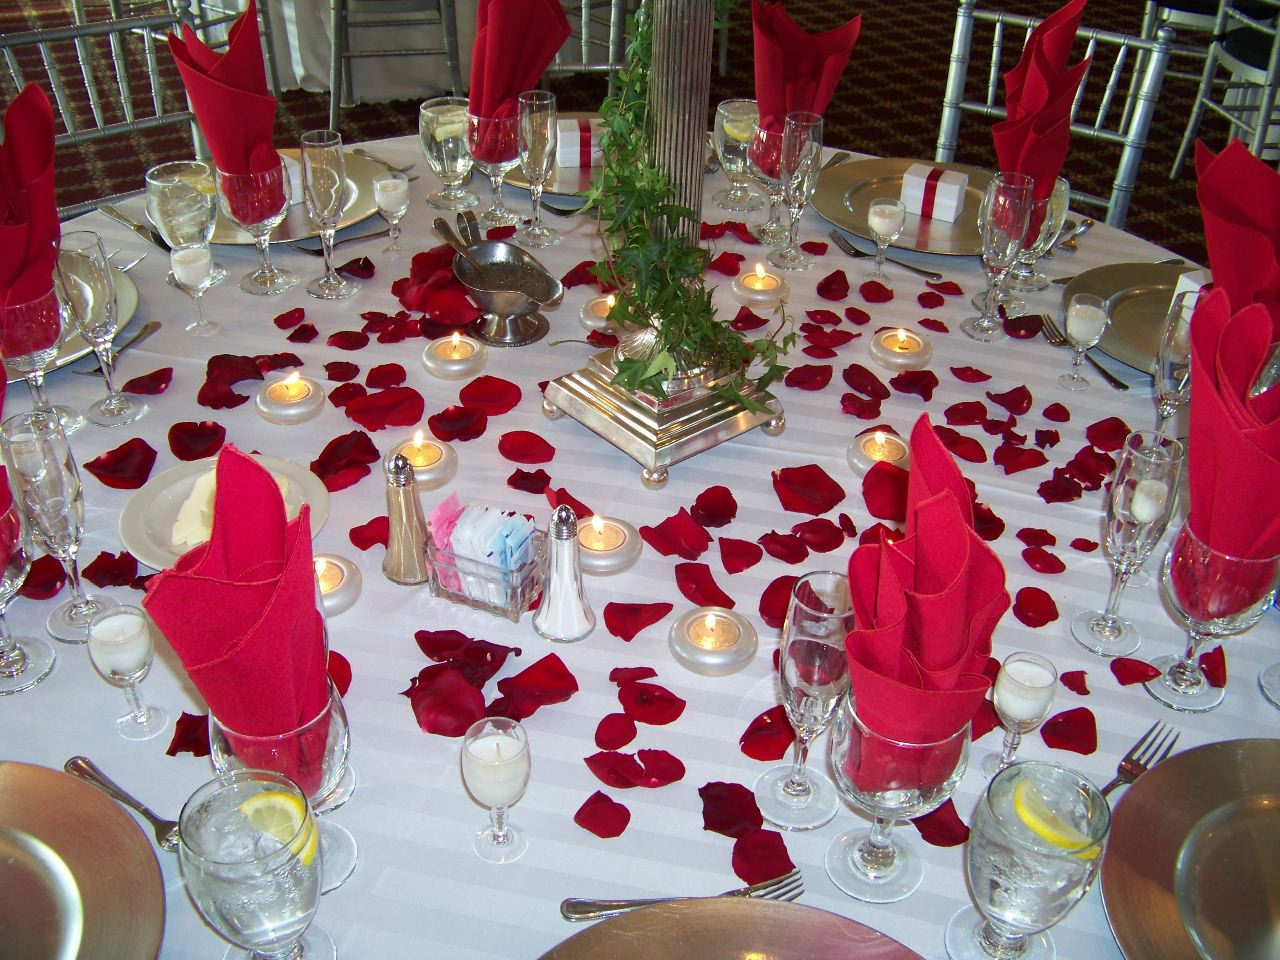 Home decor tips wedding reception decorations with balloons for Home wedding reception decorations